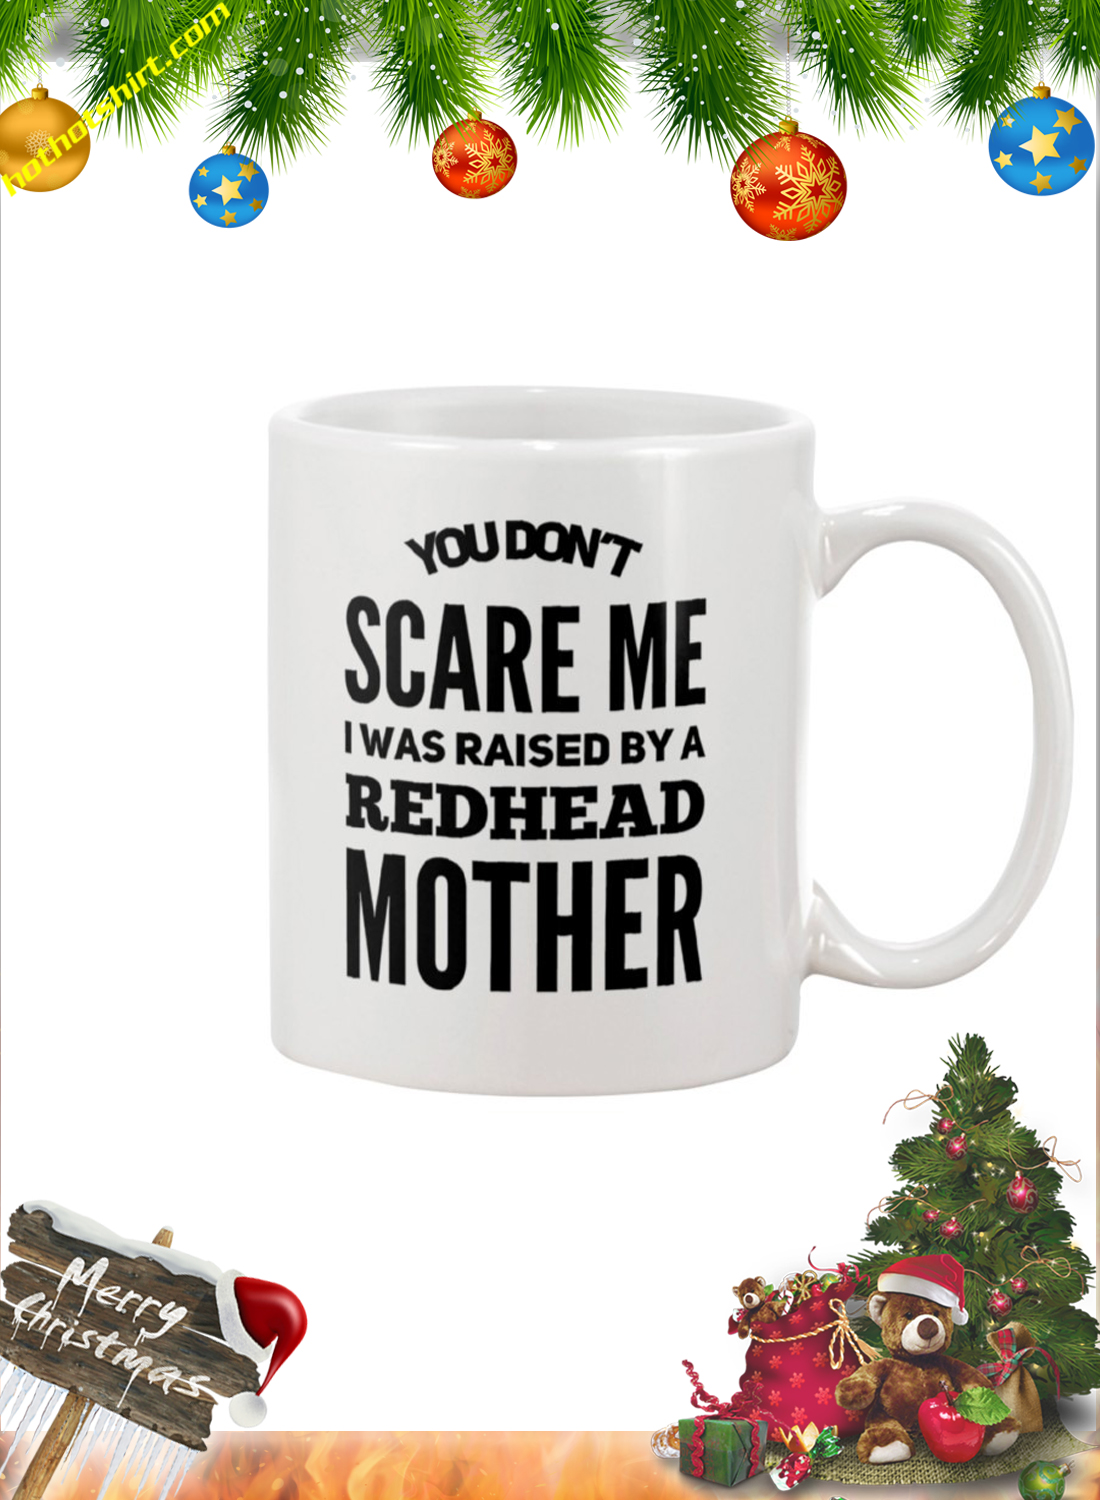 You don't scare me i was raised by a redhead mother mug 2